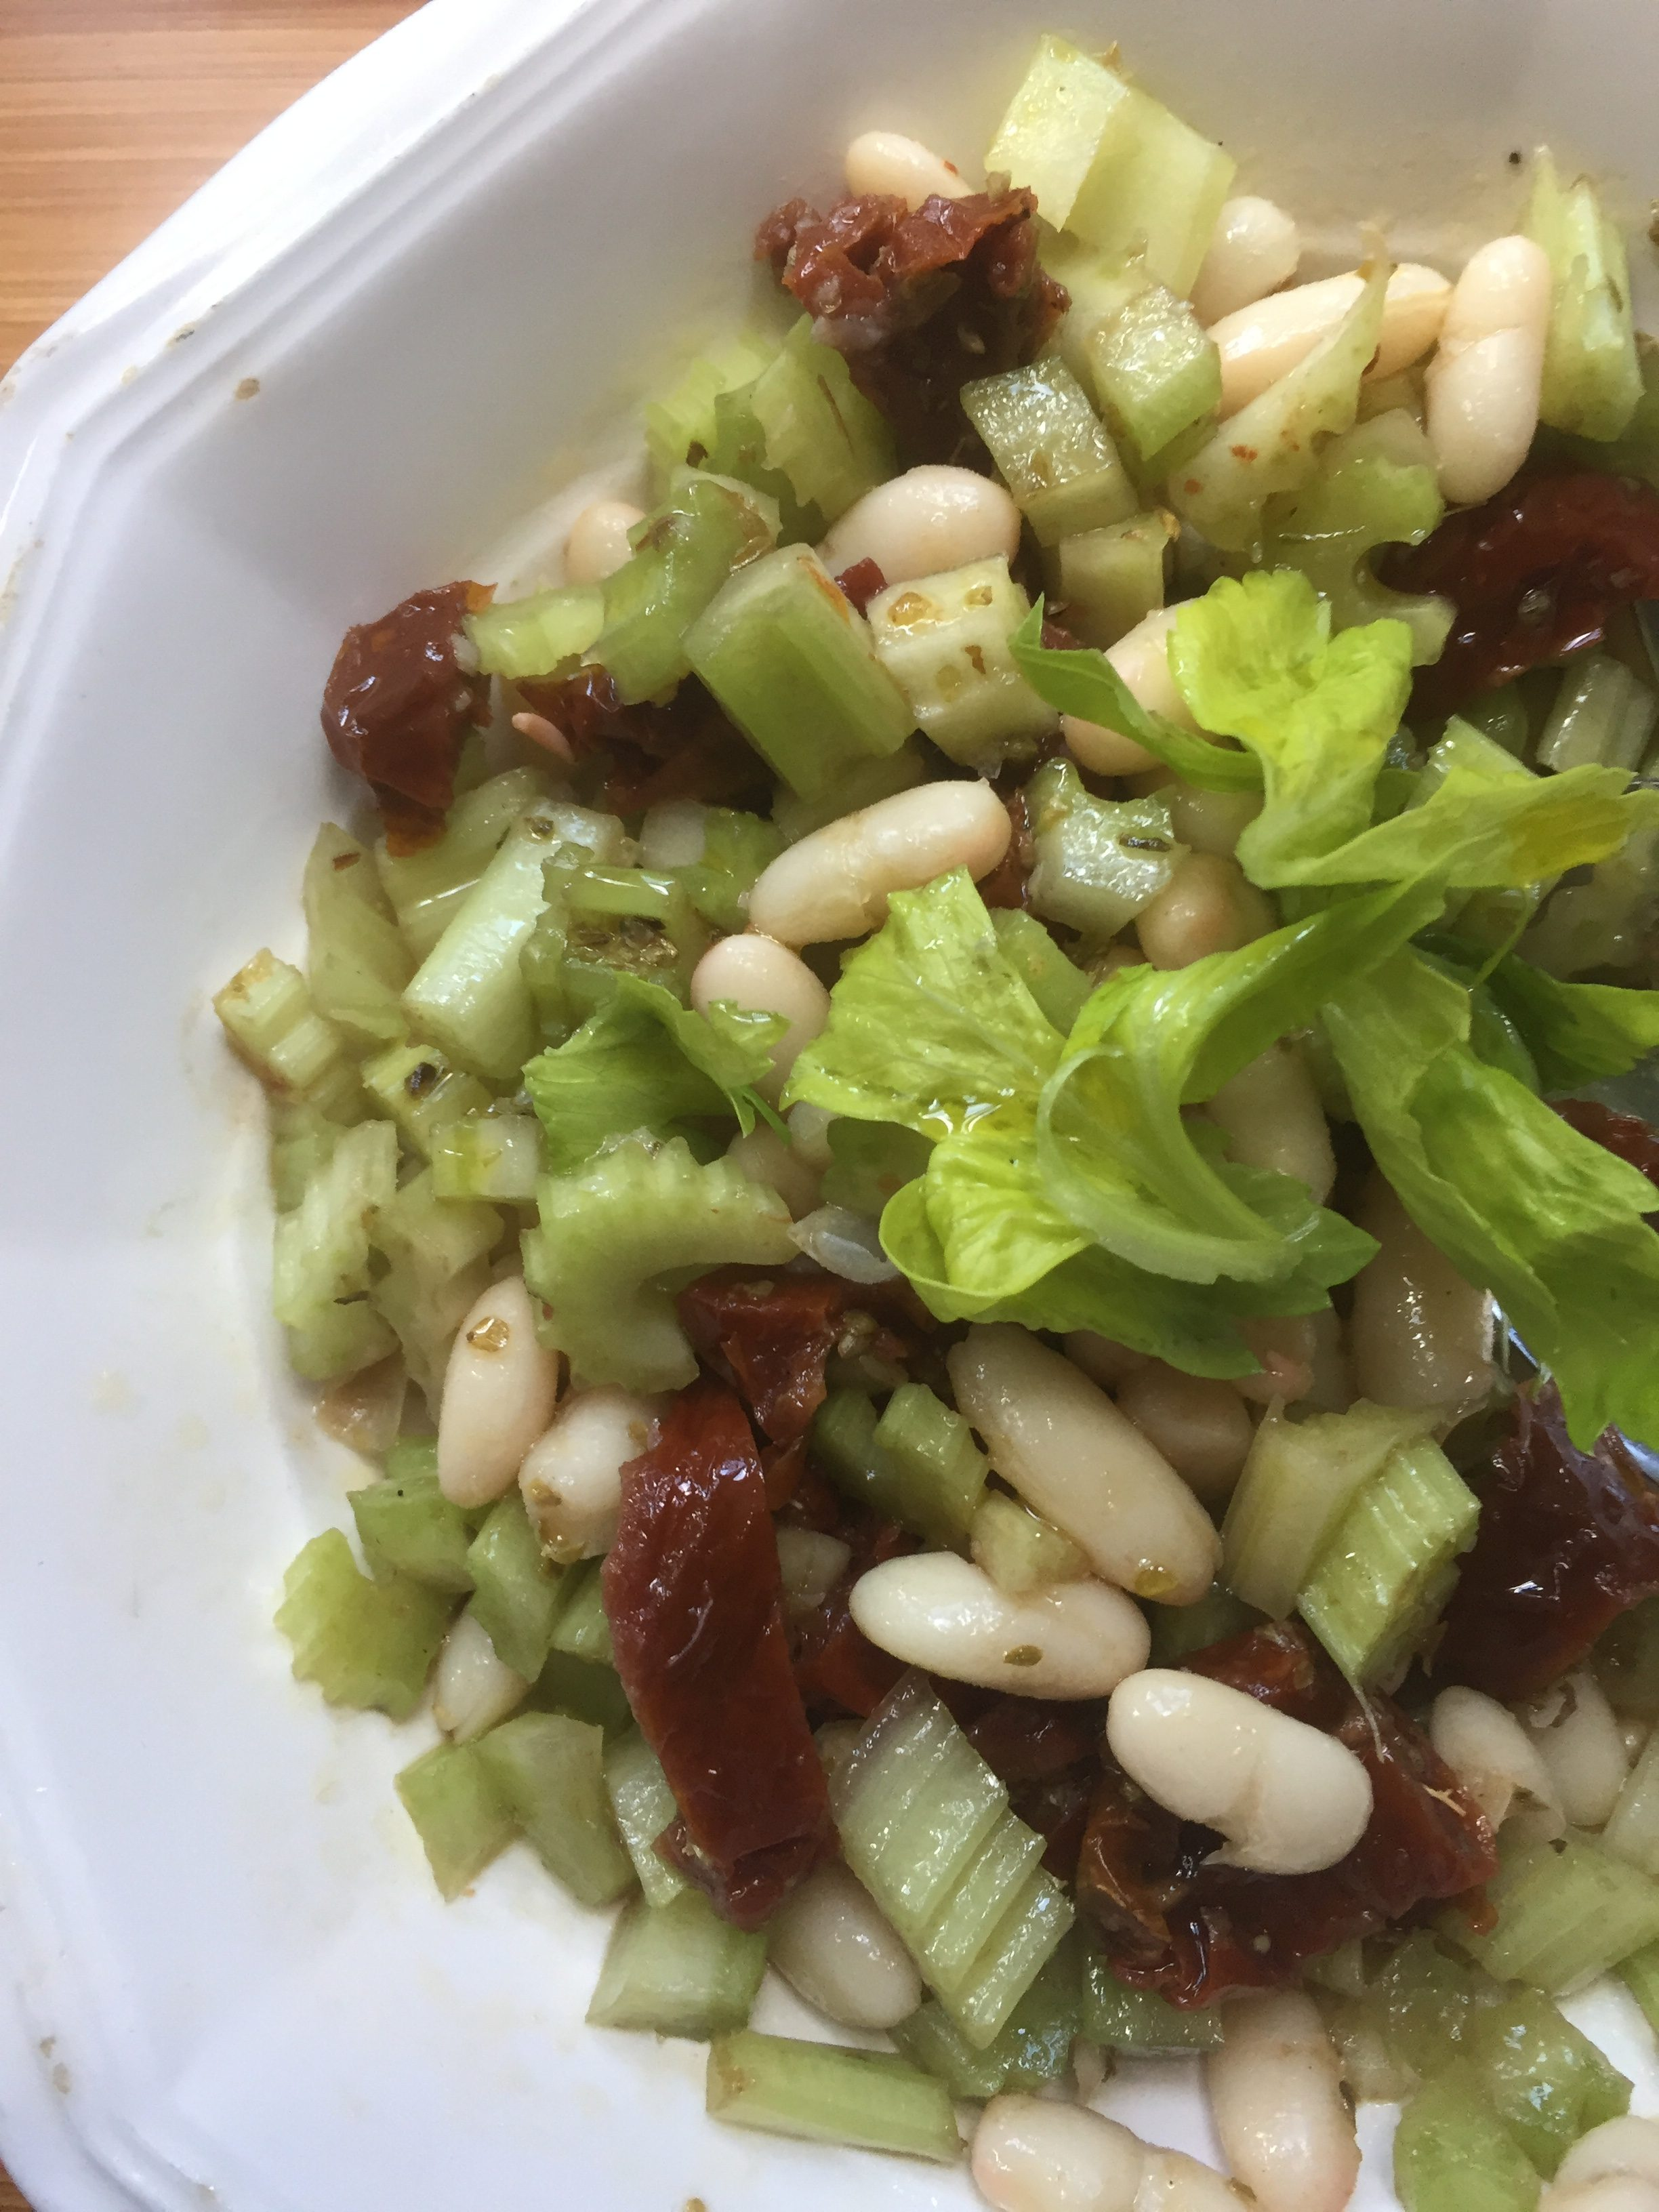 Sundried tomatoes, celery and white beans salad